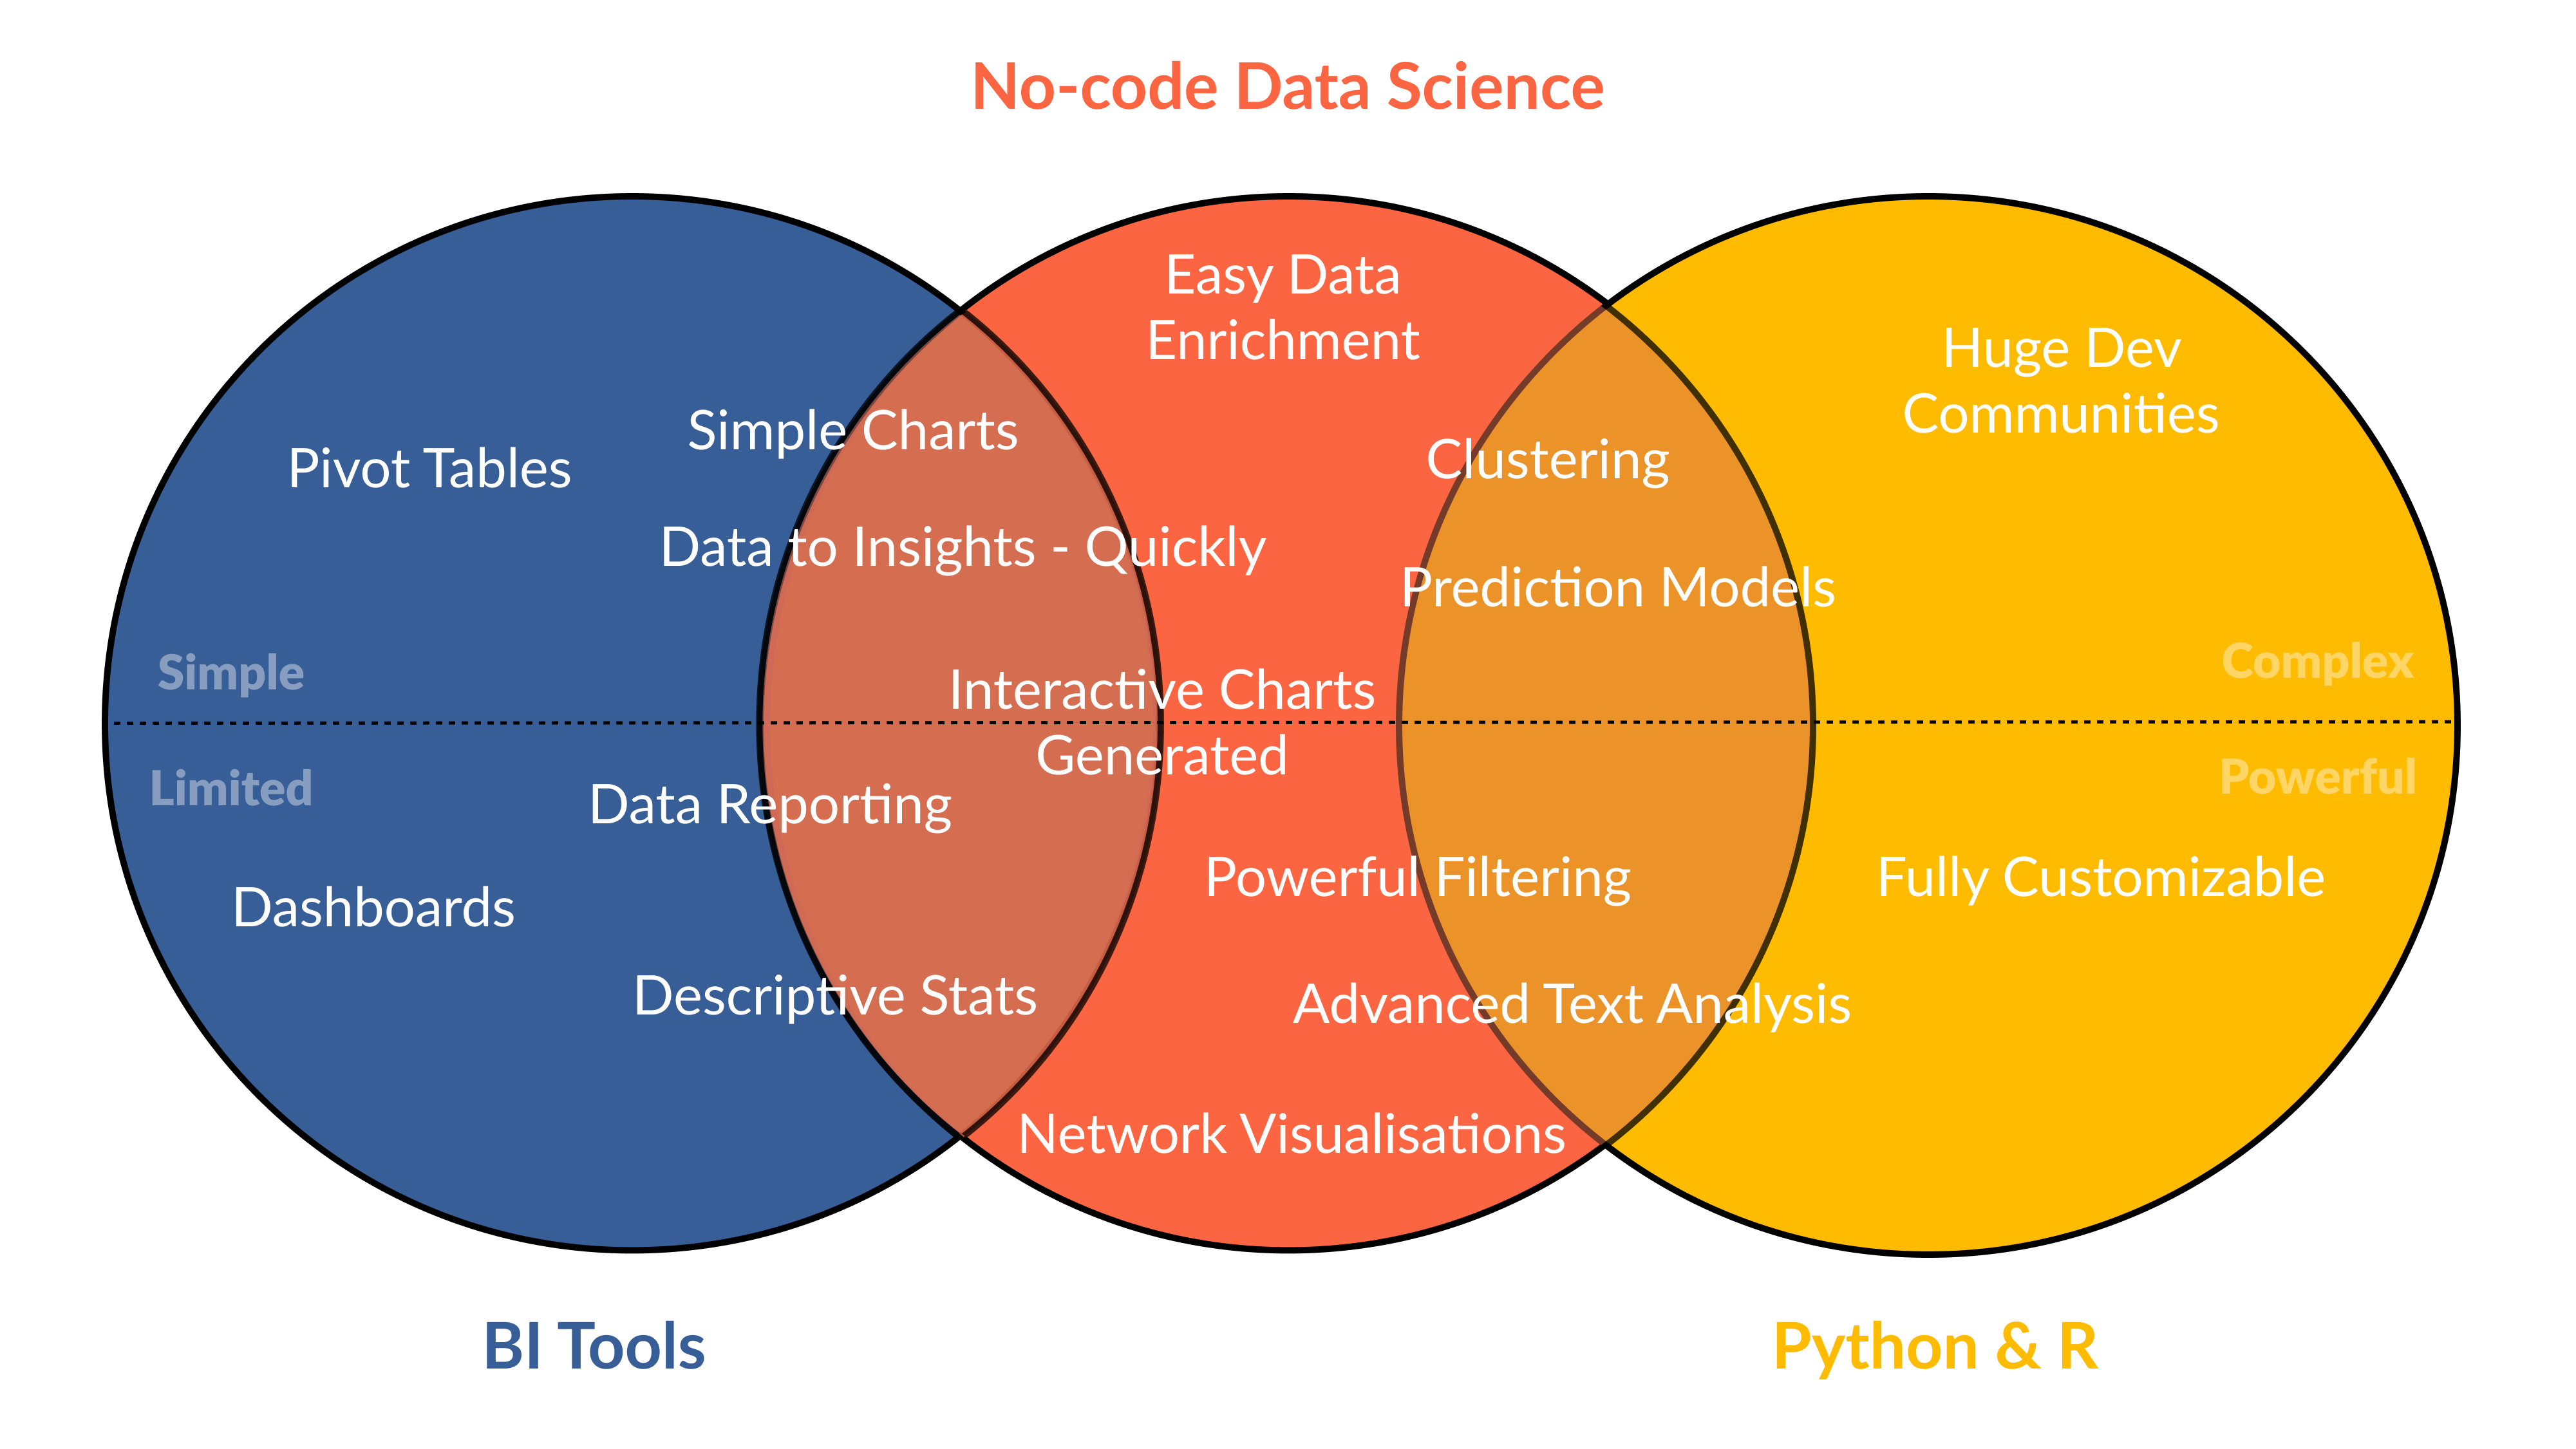 A venn diagram showing the difference between tools for market segmentation; Python or R - No-code Data Science - BI Tools.